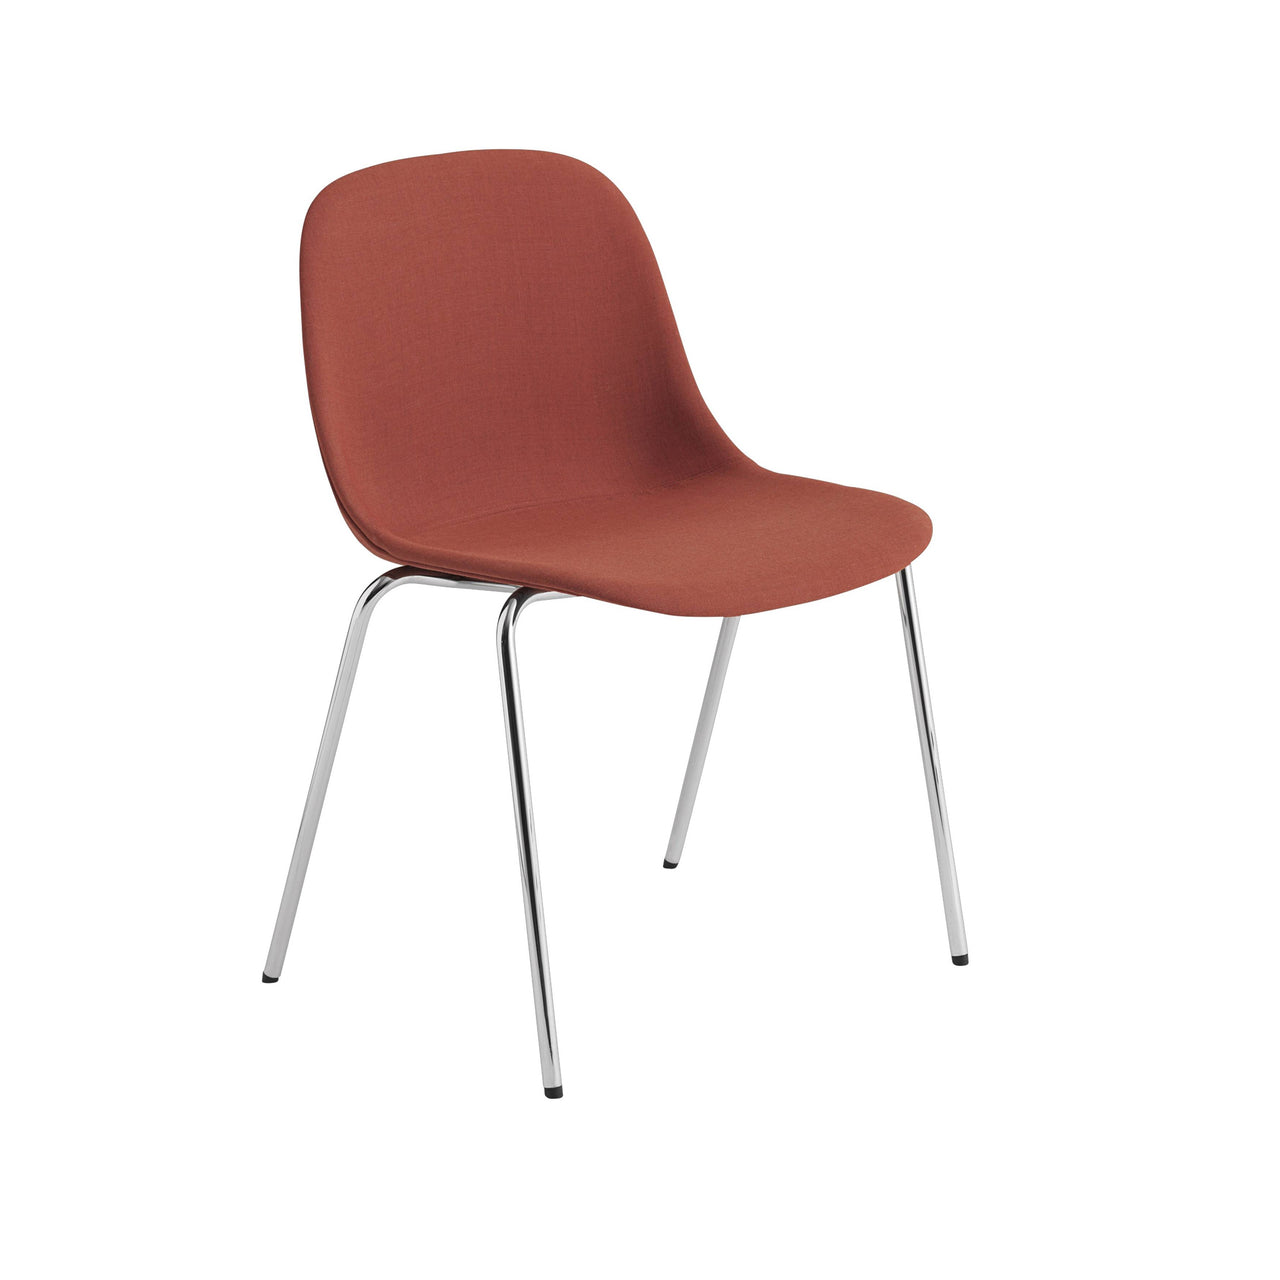 Fiber Side Chair A-Base: Upholstered